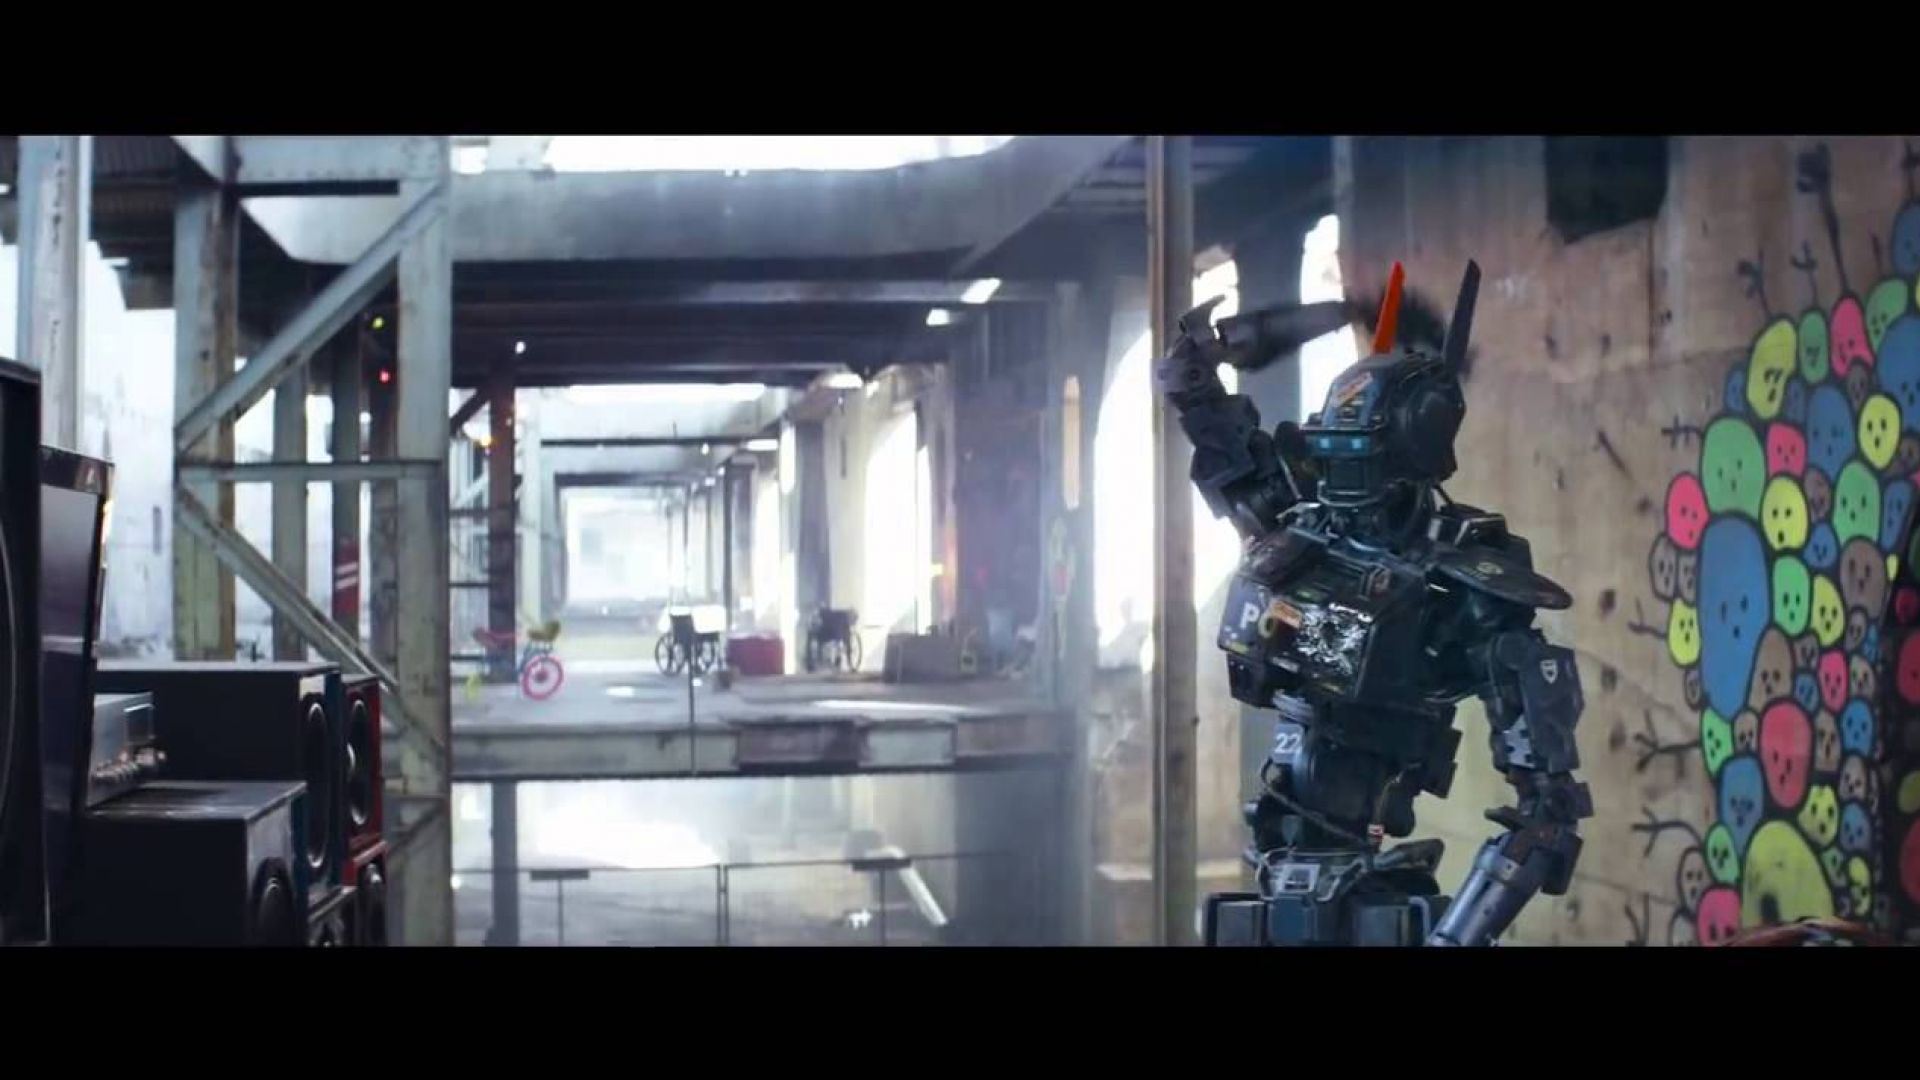 Second Official Trailer for 'Chappie'